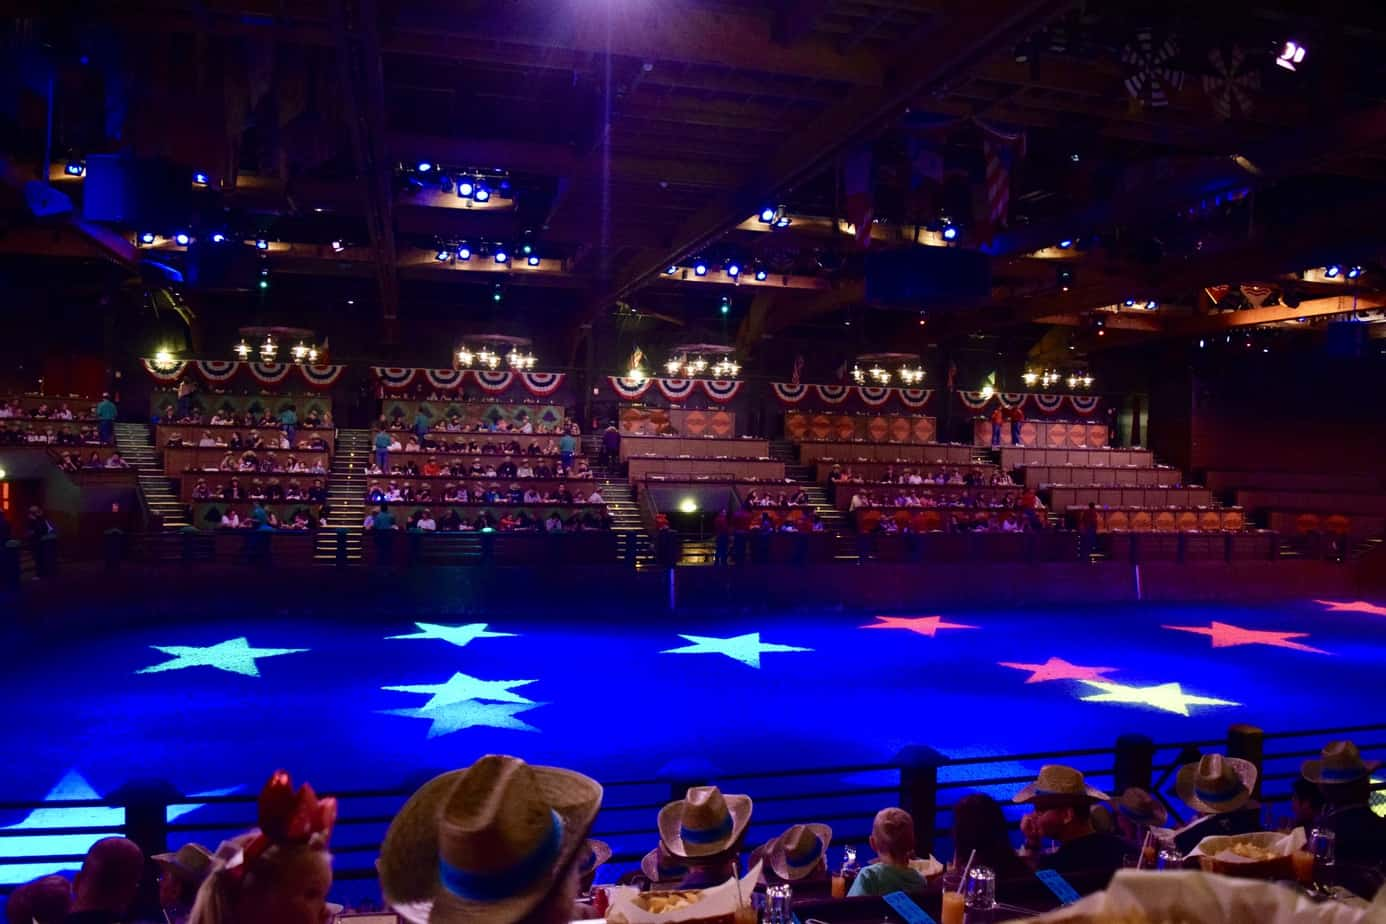 The 2000 seated arena for the buffalo bill's wild west show